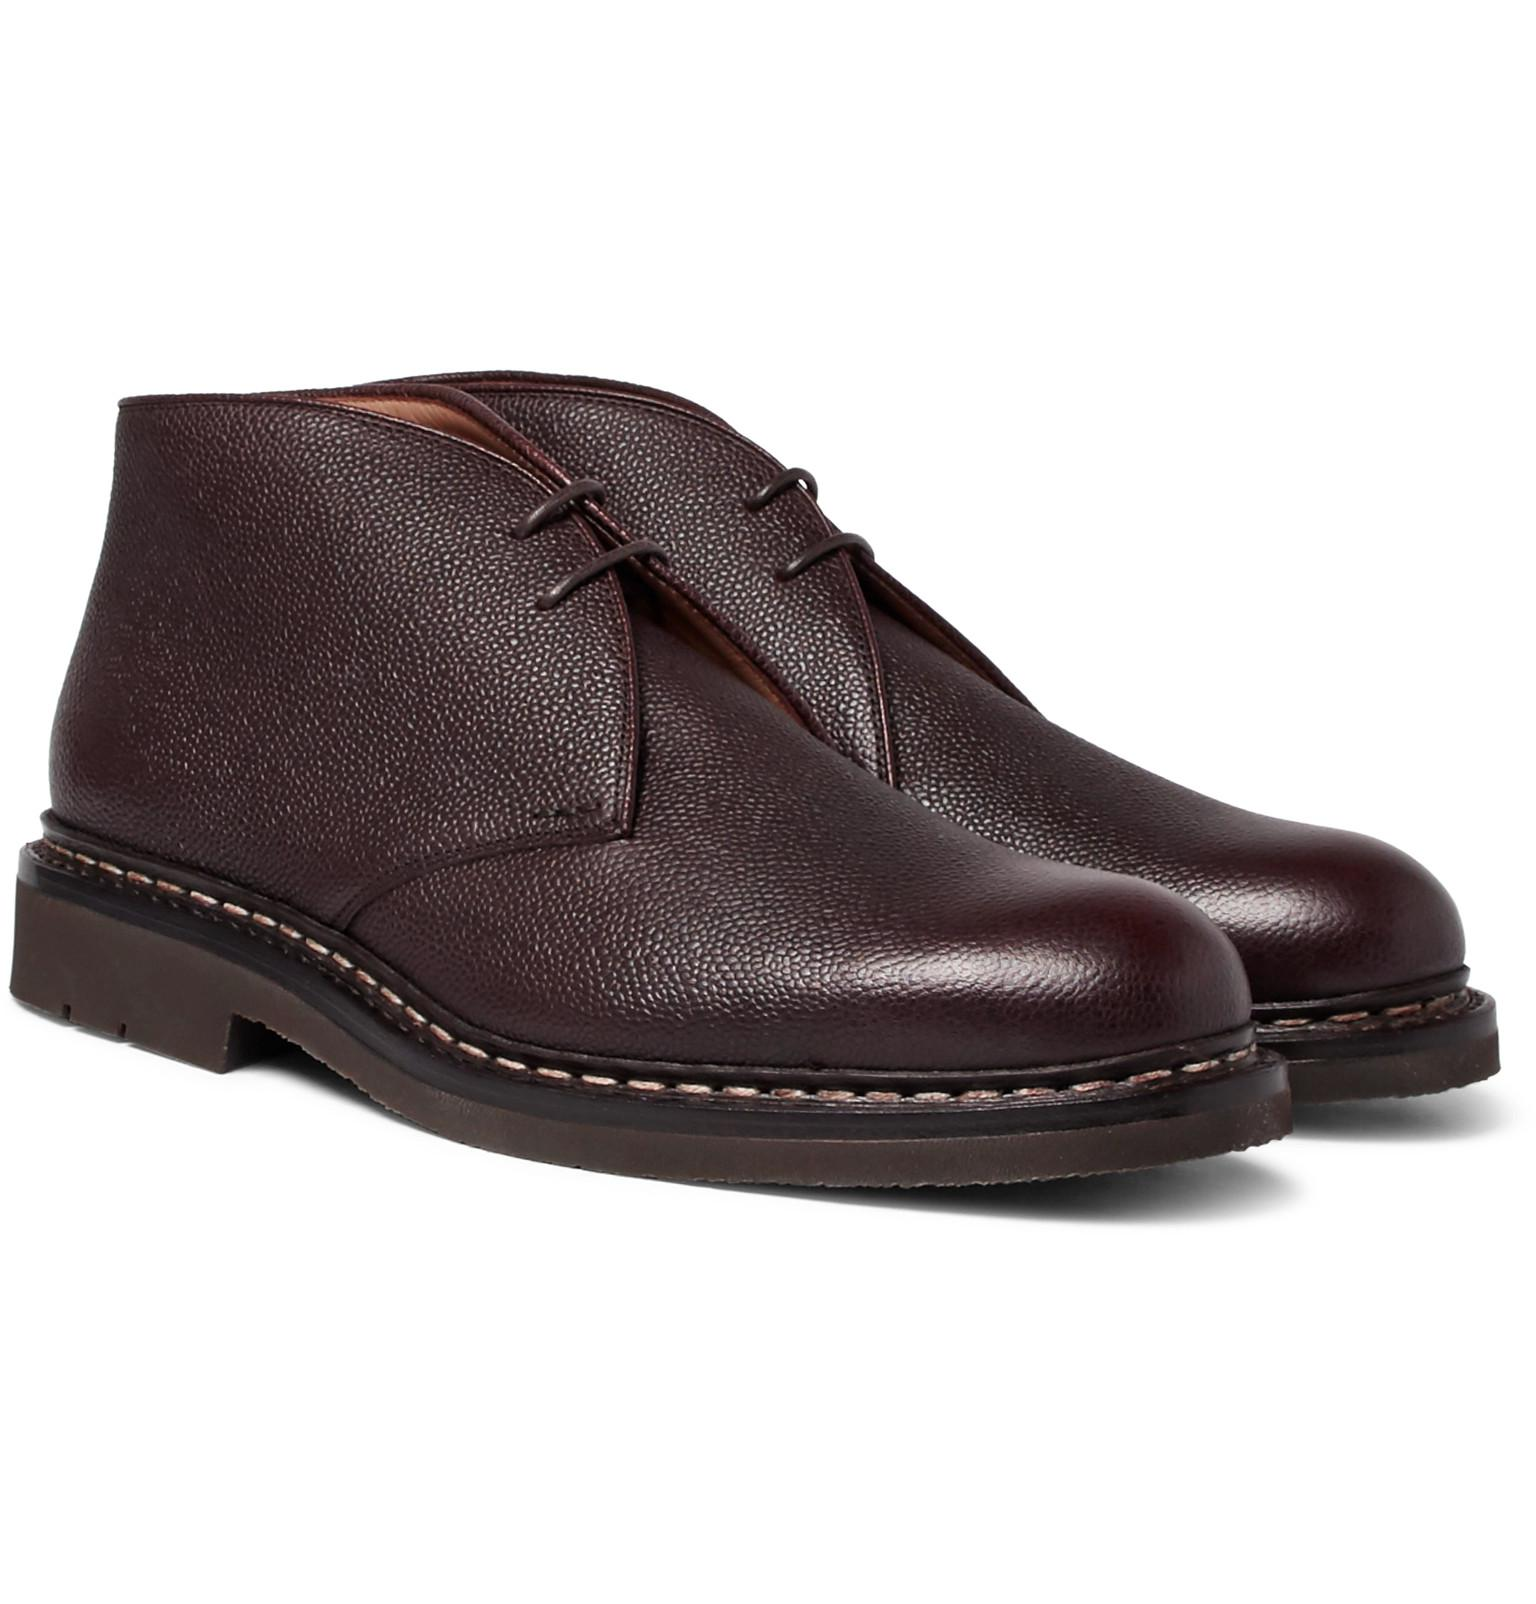 Mens Pin Grained Leather Boots Heschung nIzdEwuYah